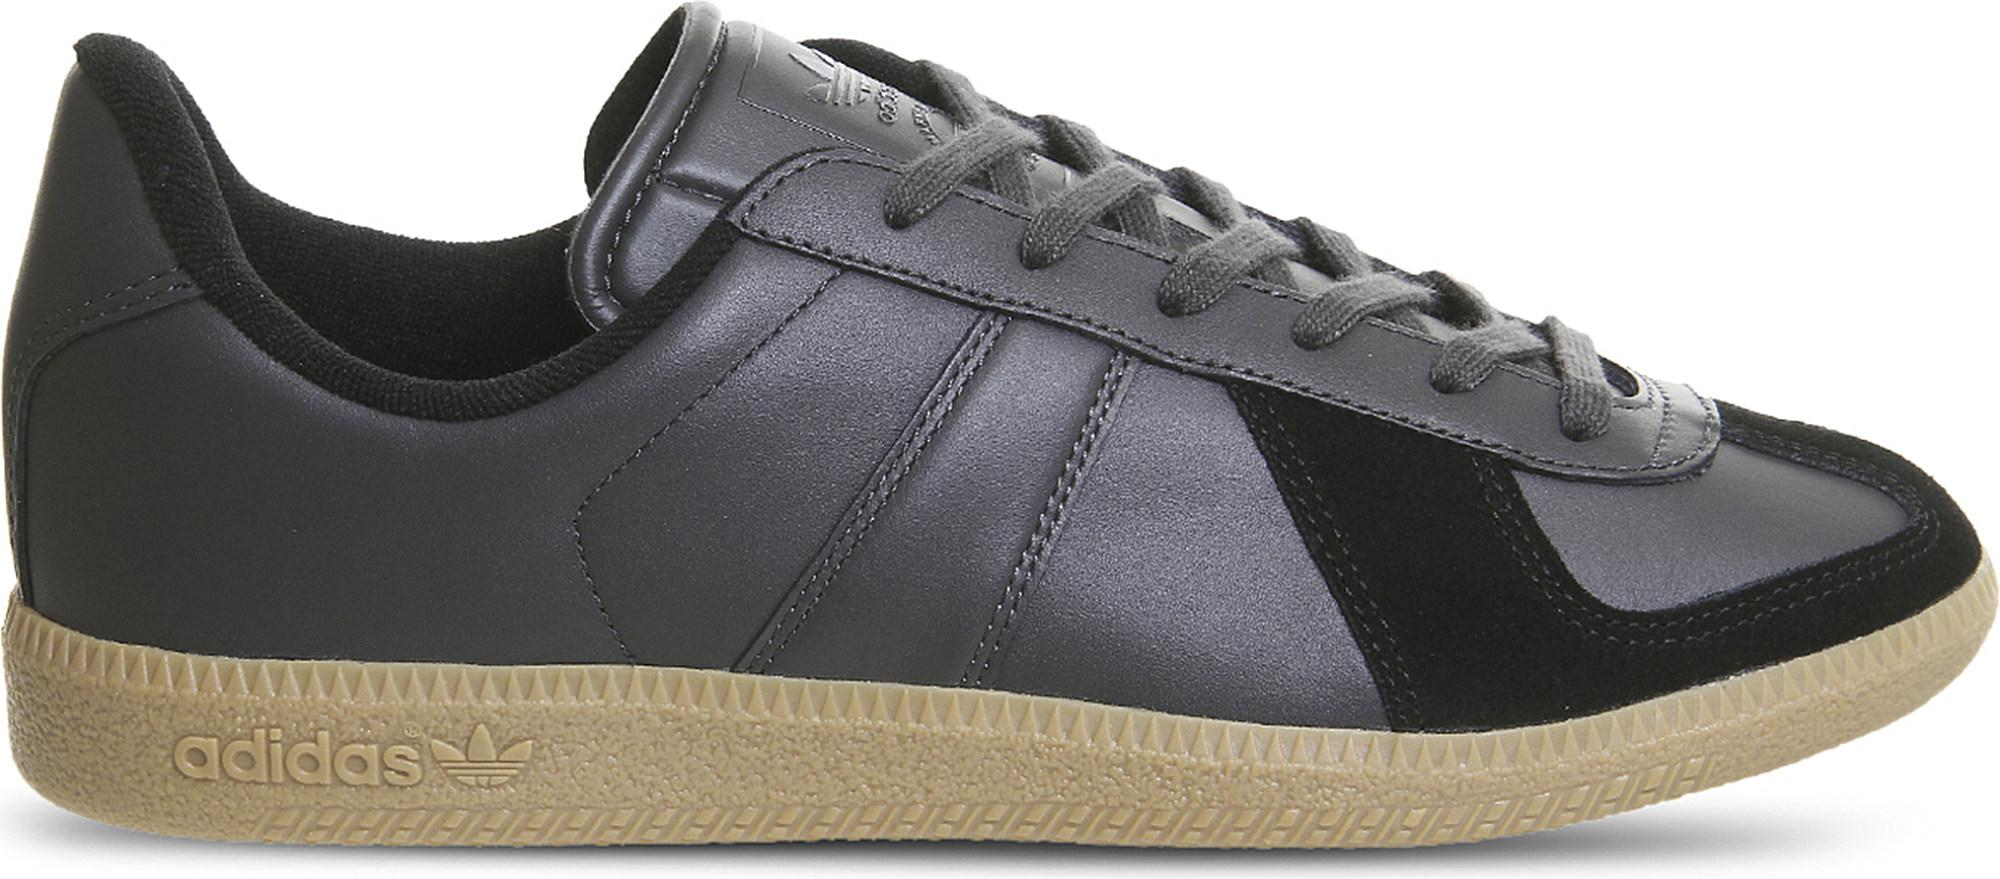 96053d2415d Adidas Originals Bw Army Trainers in Black for Men - Lyst